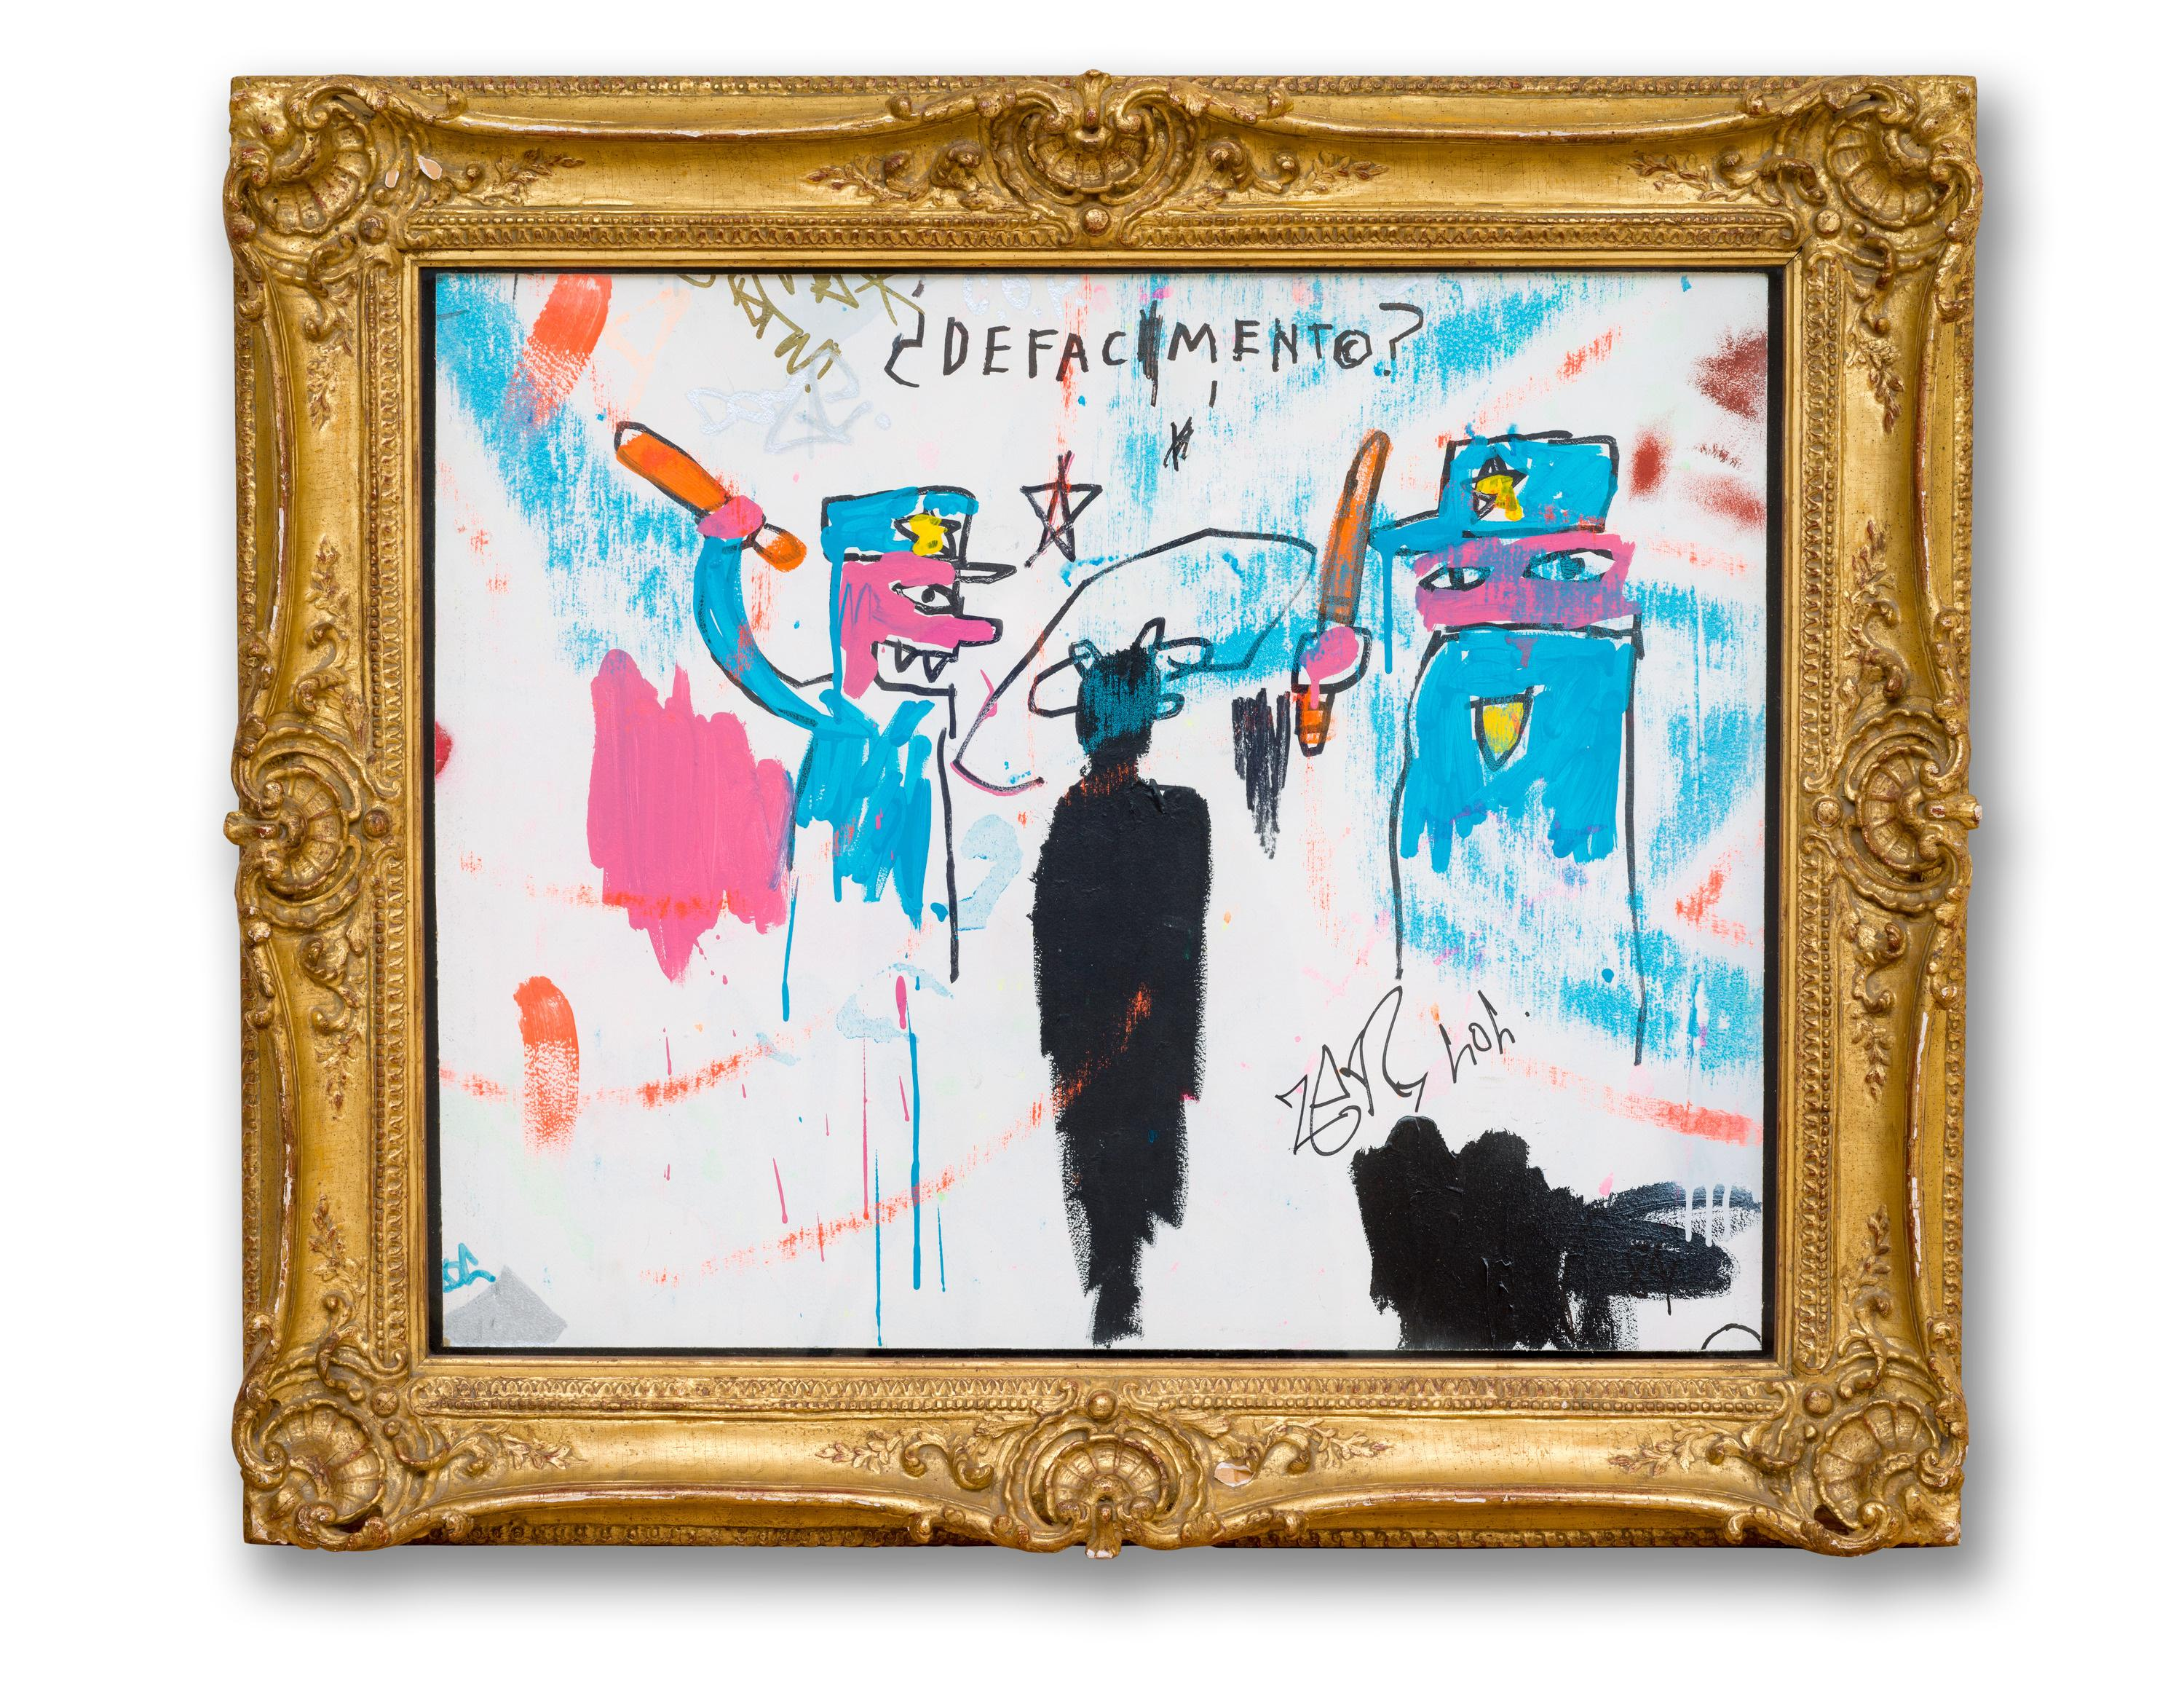 Defacement: the tragic story of Basquiat's most personal painting